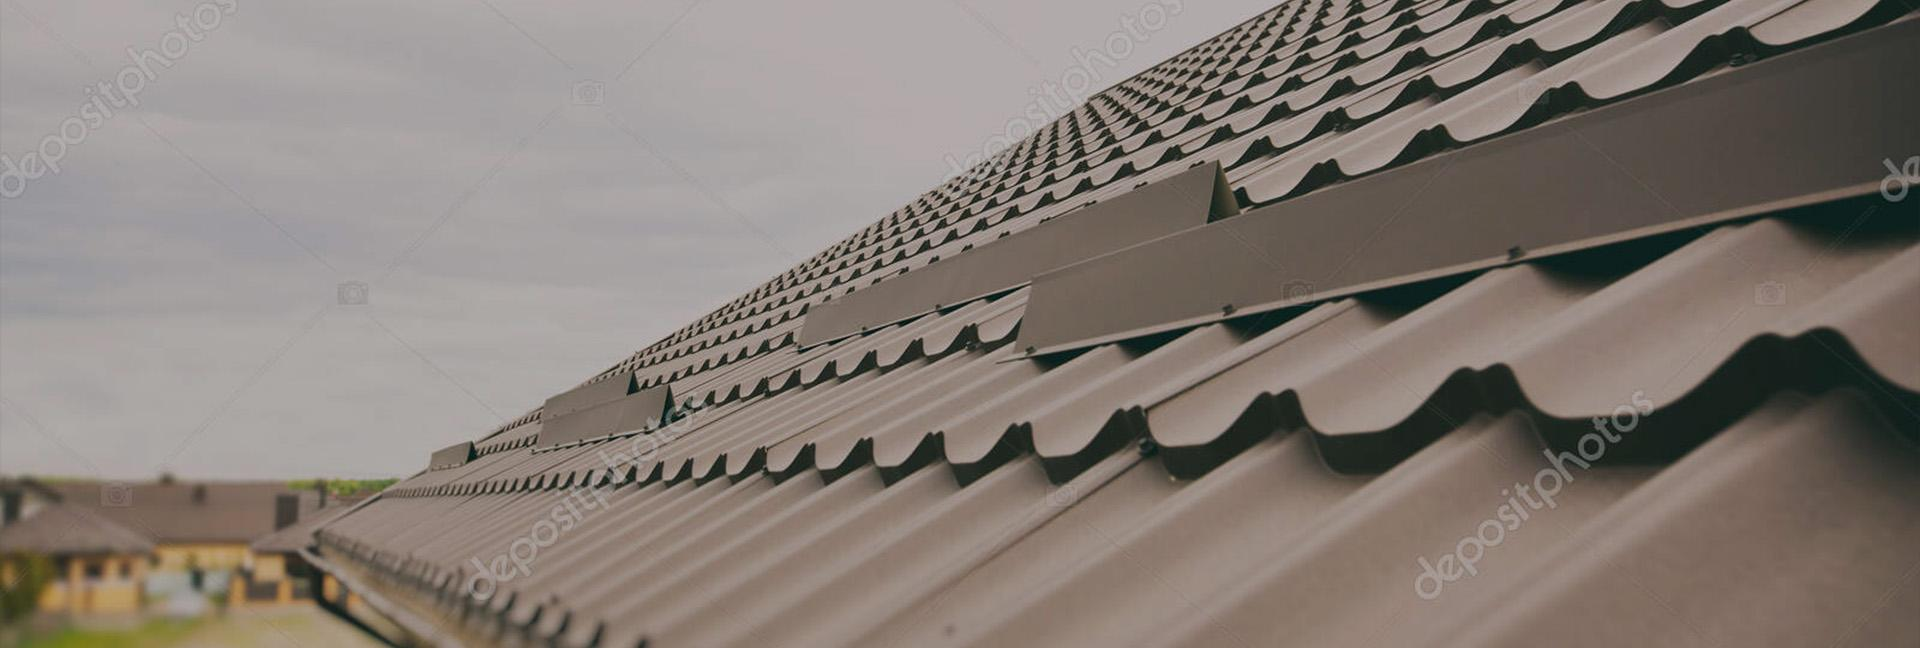 Metal Roofing in Irving, Burleson, Fort Worth, Arlington, Weatherford, TX